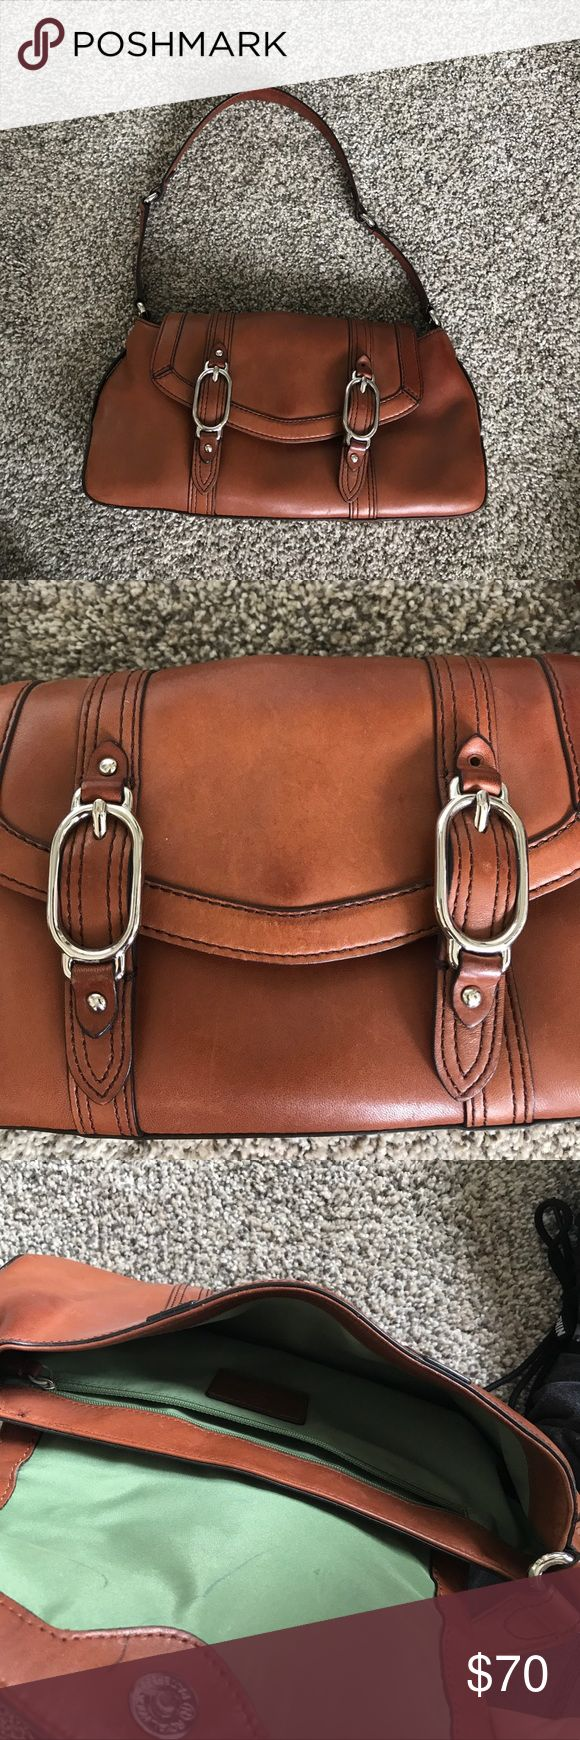 Cole Haan Brown Shoulder Purse This Cole Haan bag is perfect for everyday use.  It is used and is missing one stud on the front, as pictured, but is otherwise in good condition. It has one zippered pocket on the inside. Cole Haan Bags Shoulder Bags